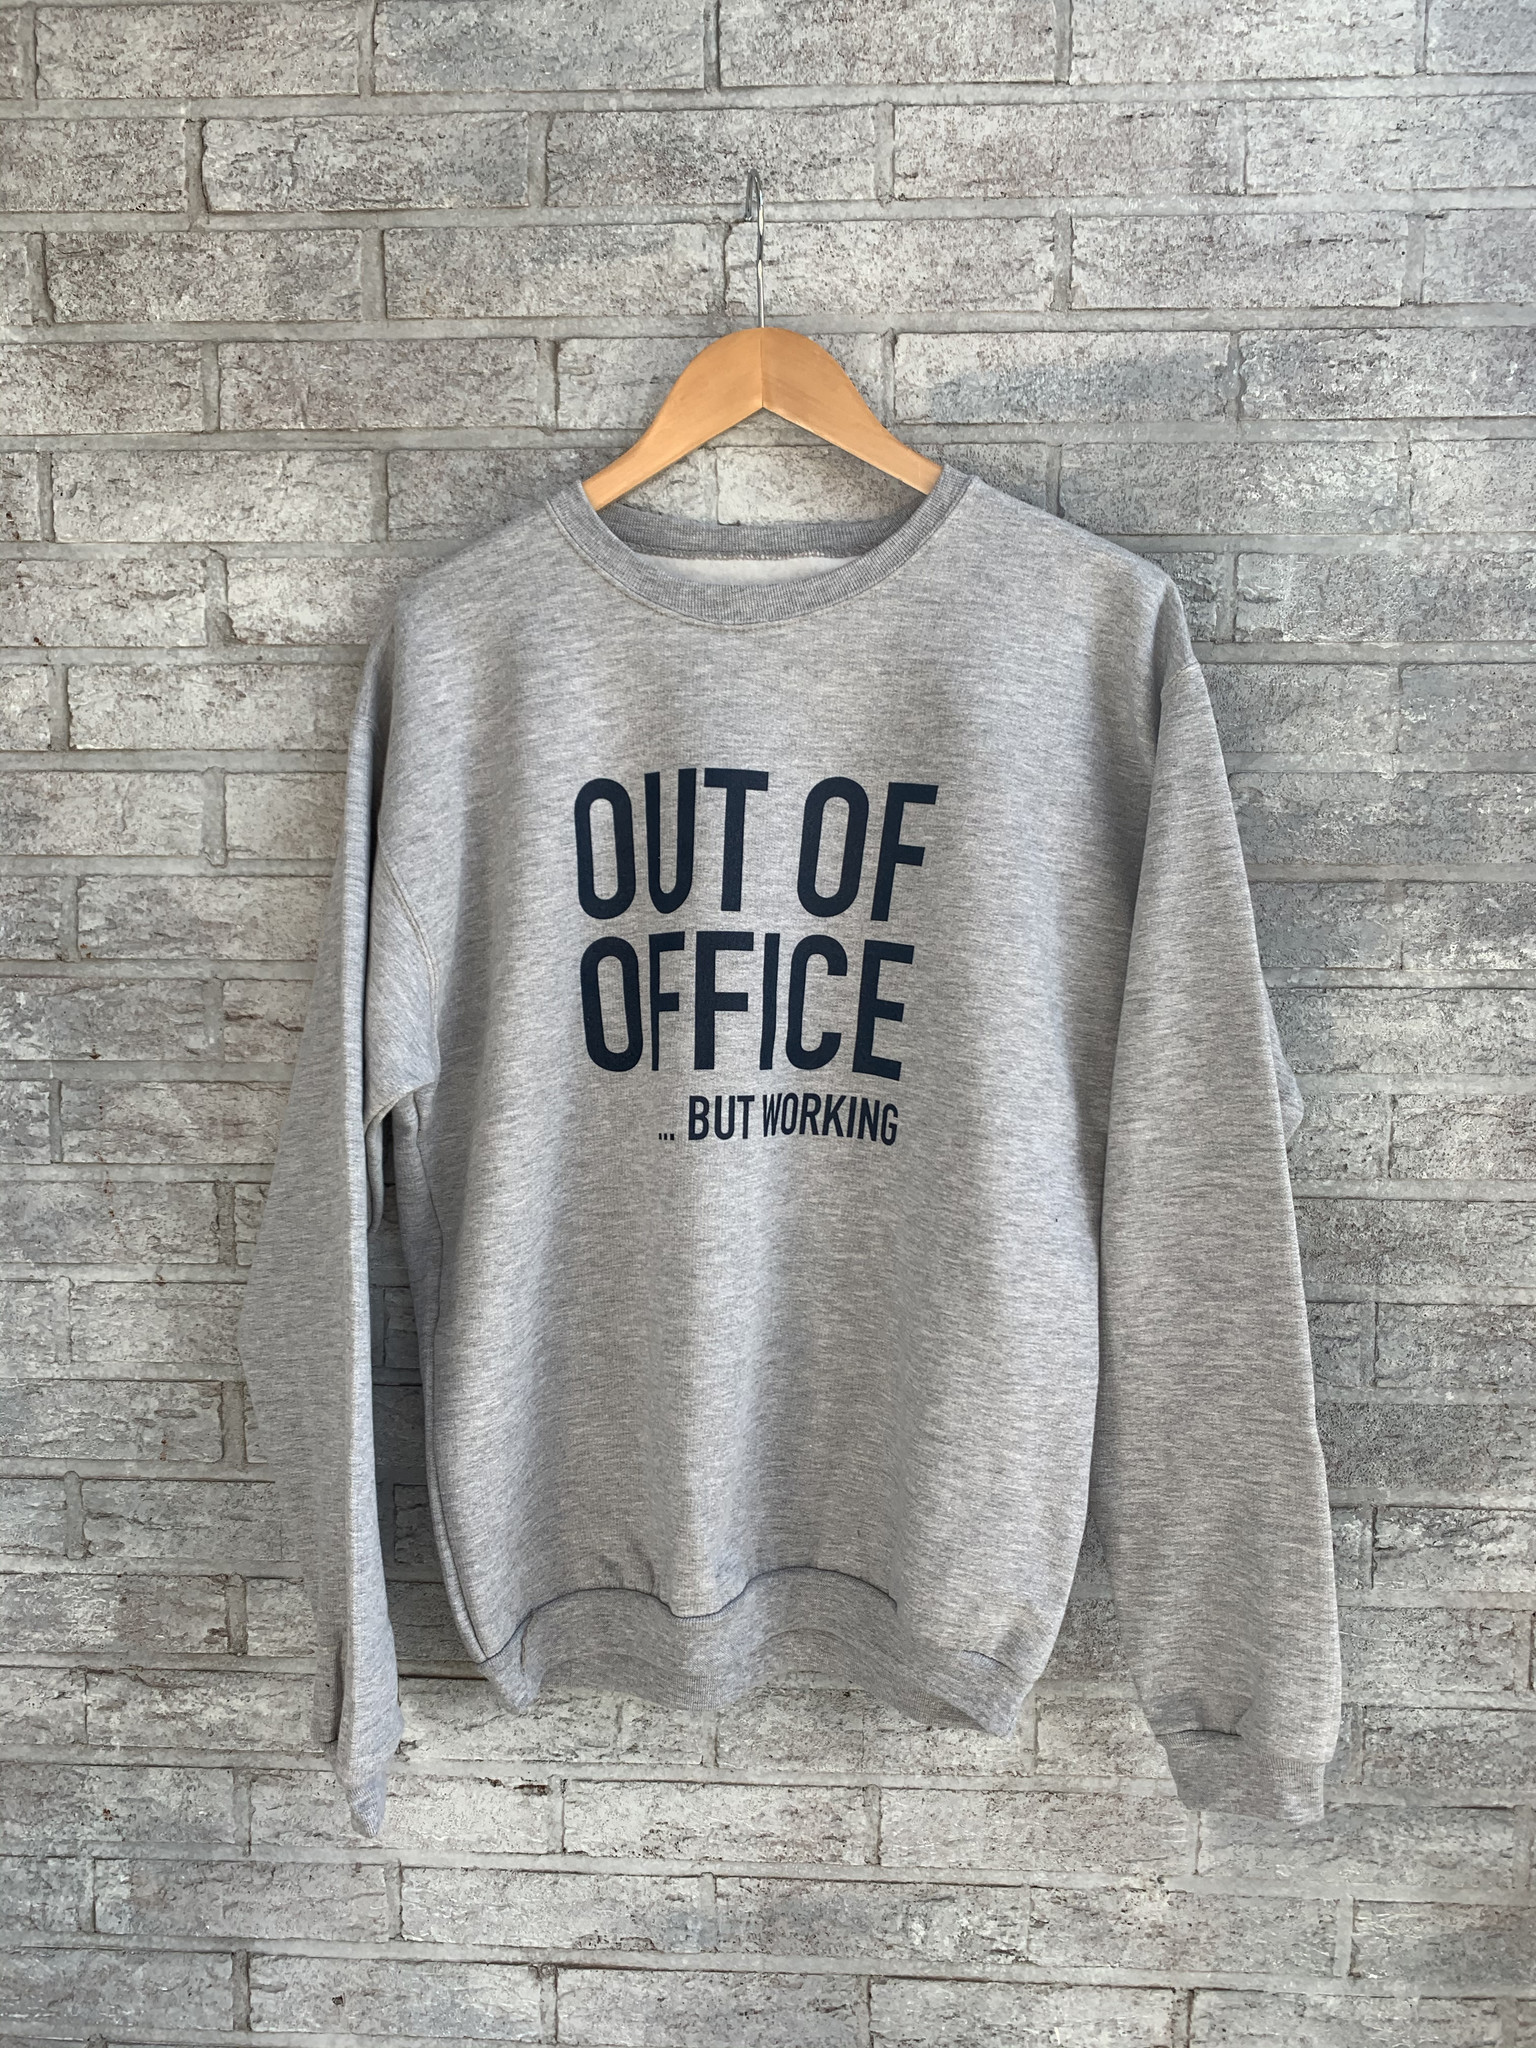 MYSHIRT OUR OF OFFICE H GREY SWEATER